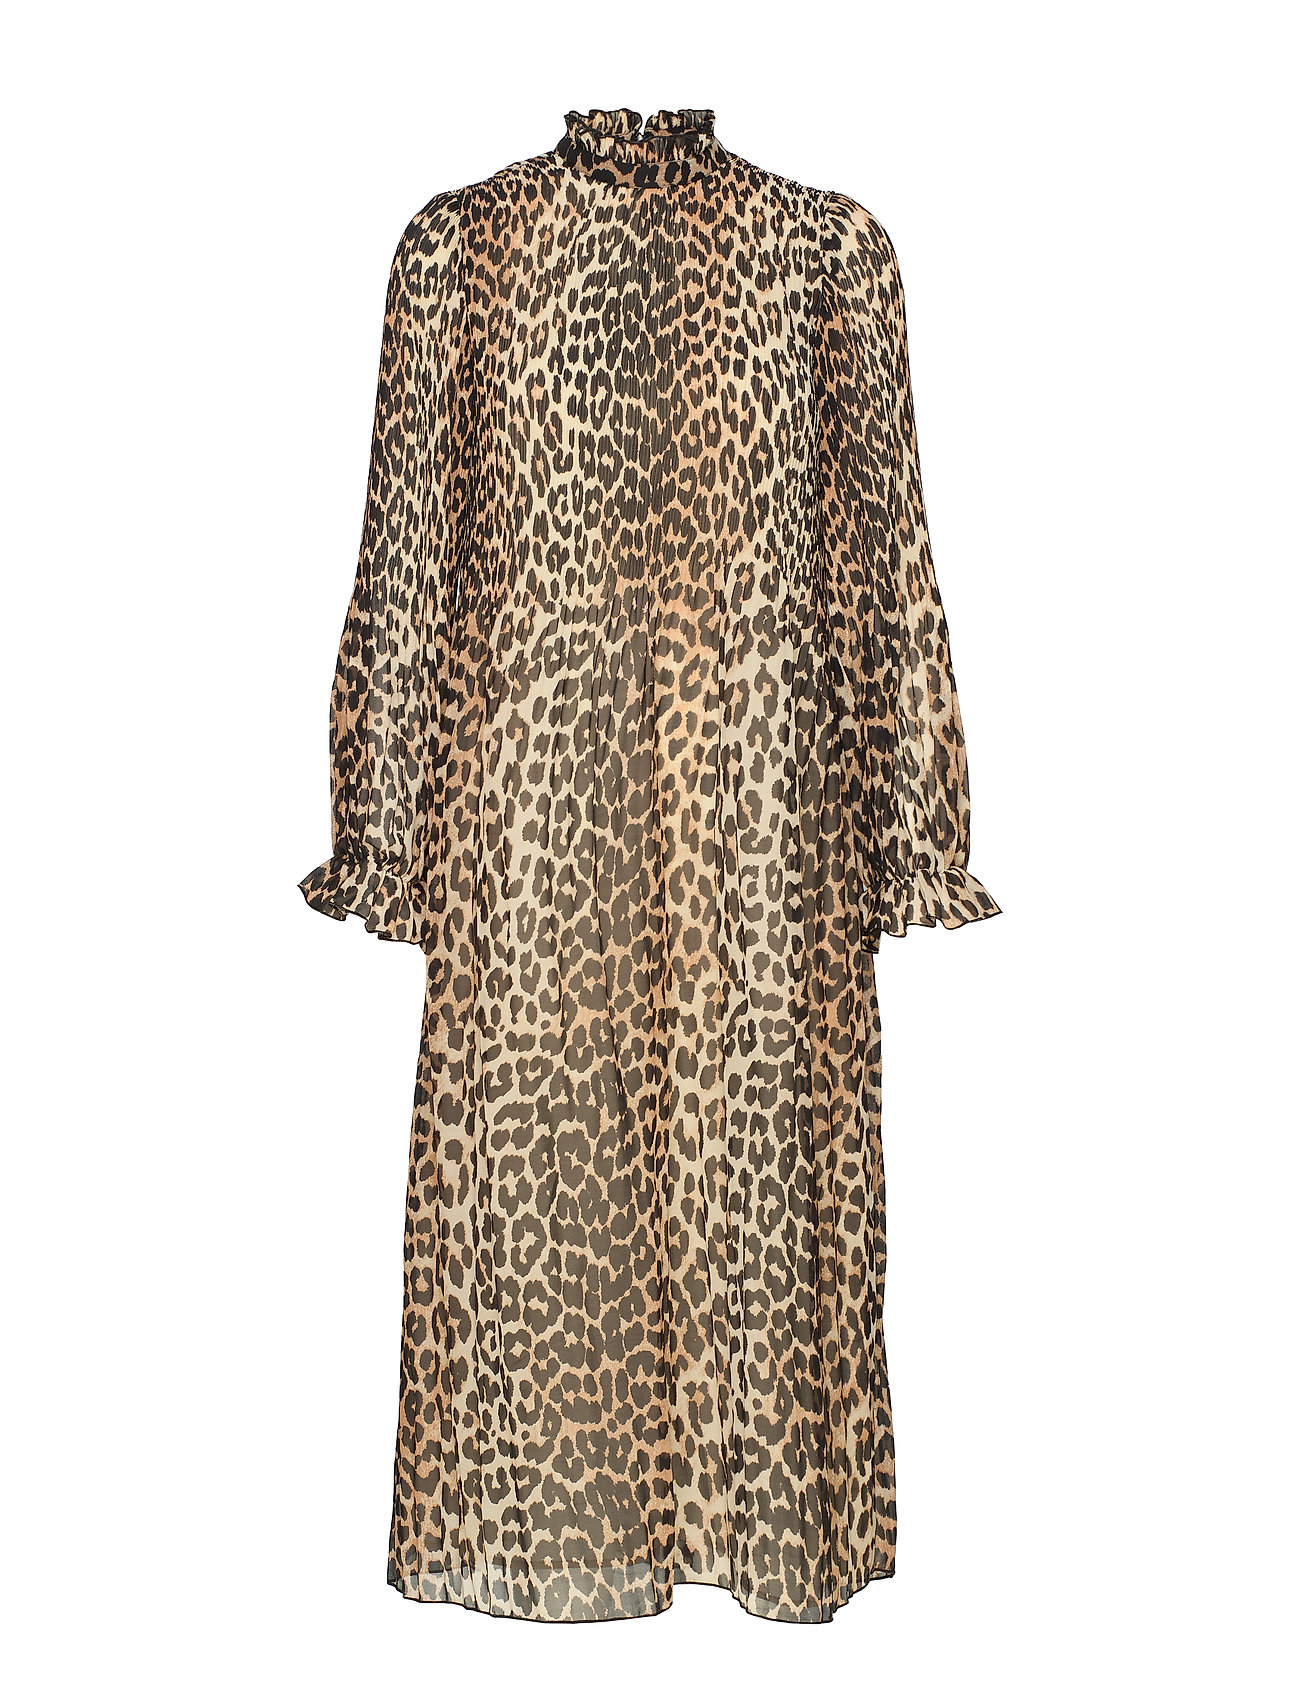 Ganni Pleated Georgette Dress - LEOPARD